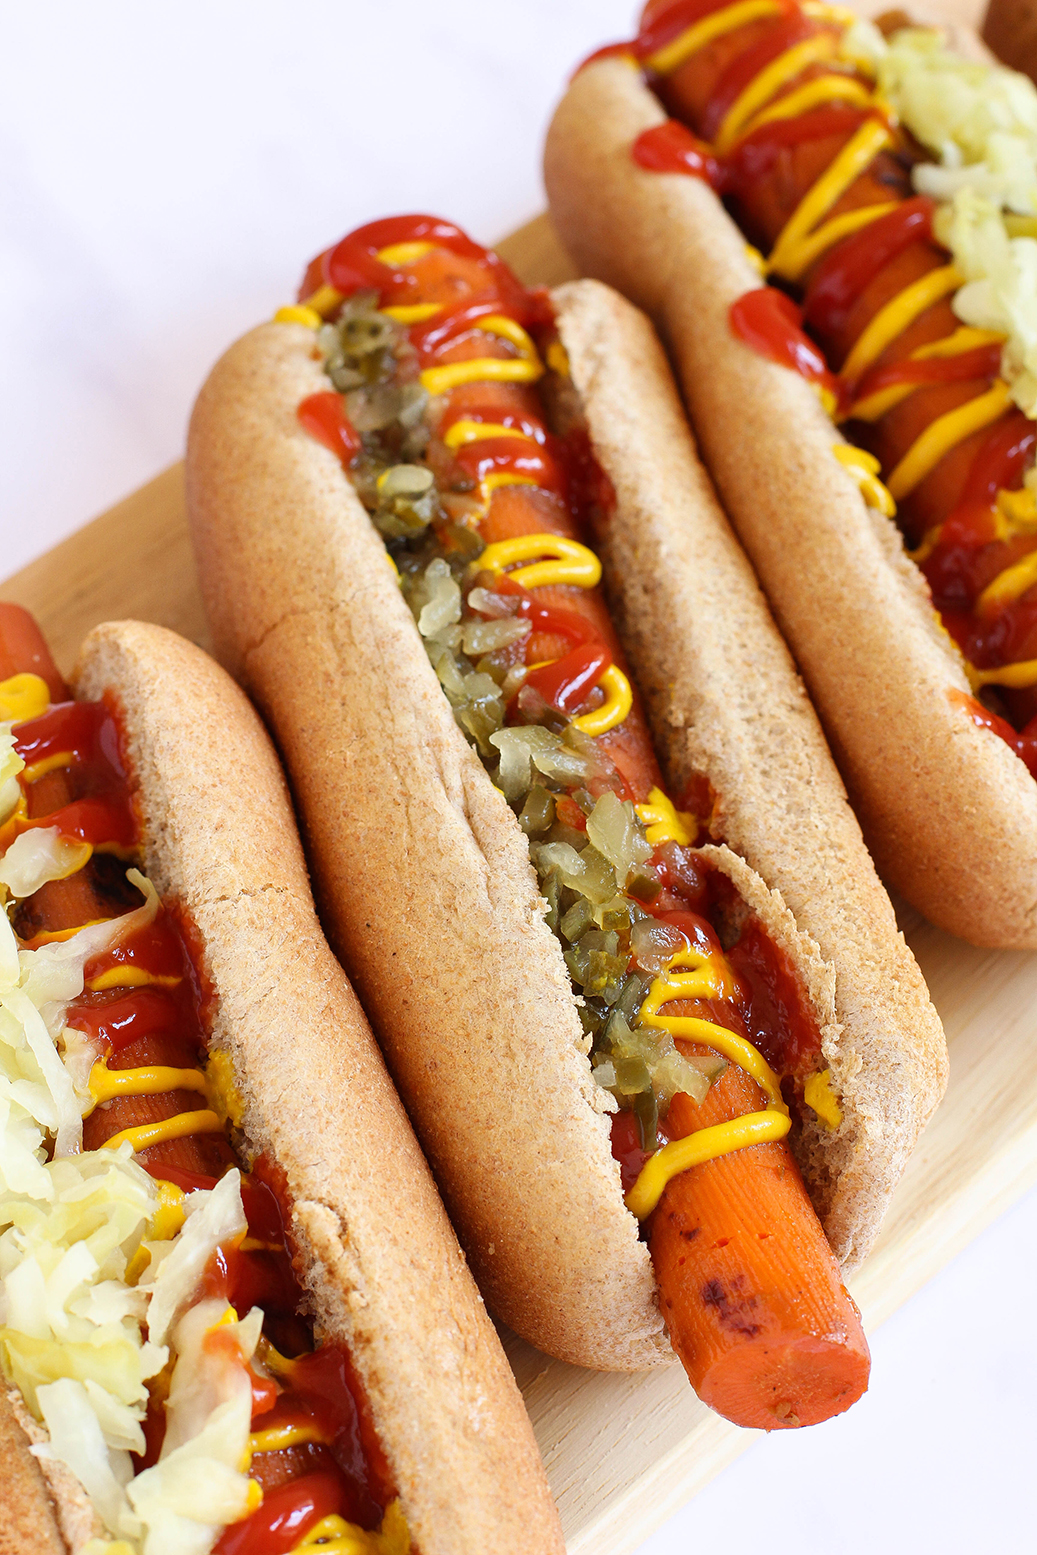 Vegan Carrot Hot Dogs | The Mostly Vegan